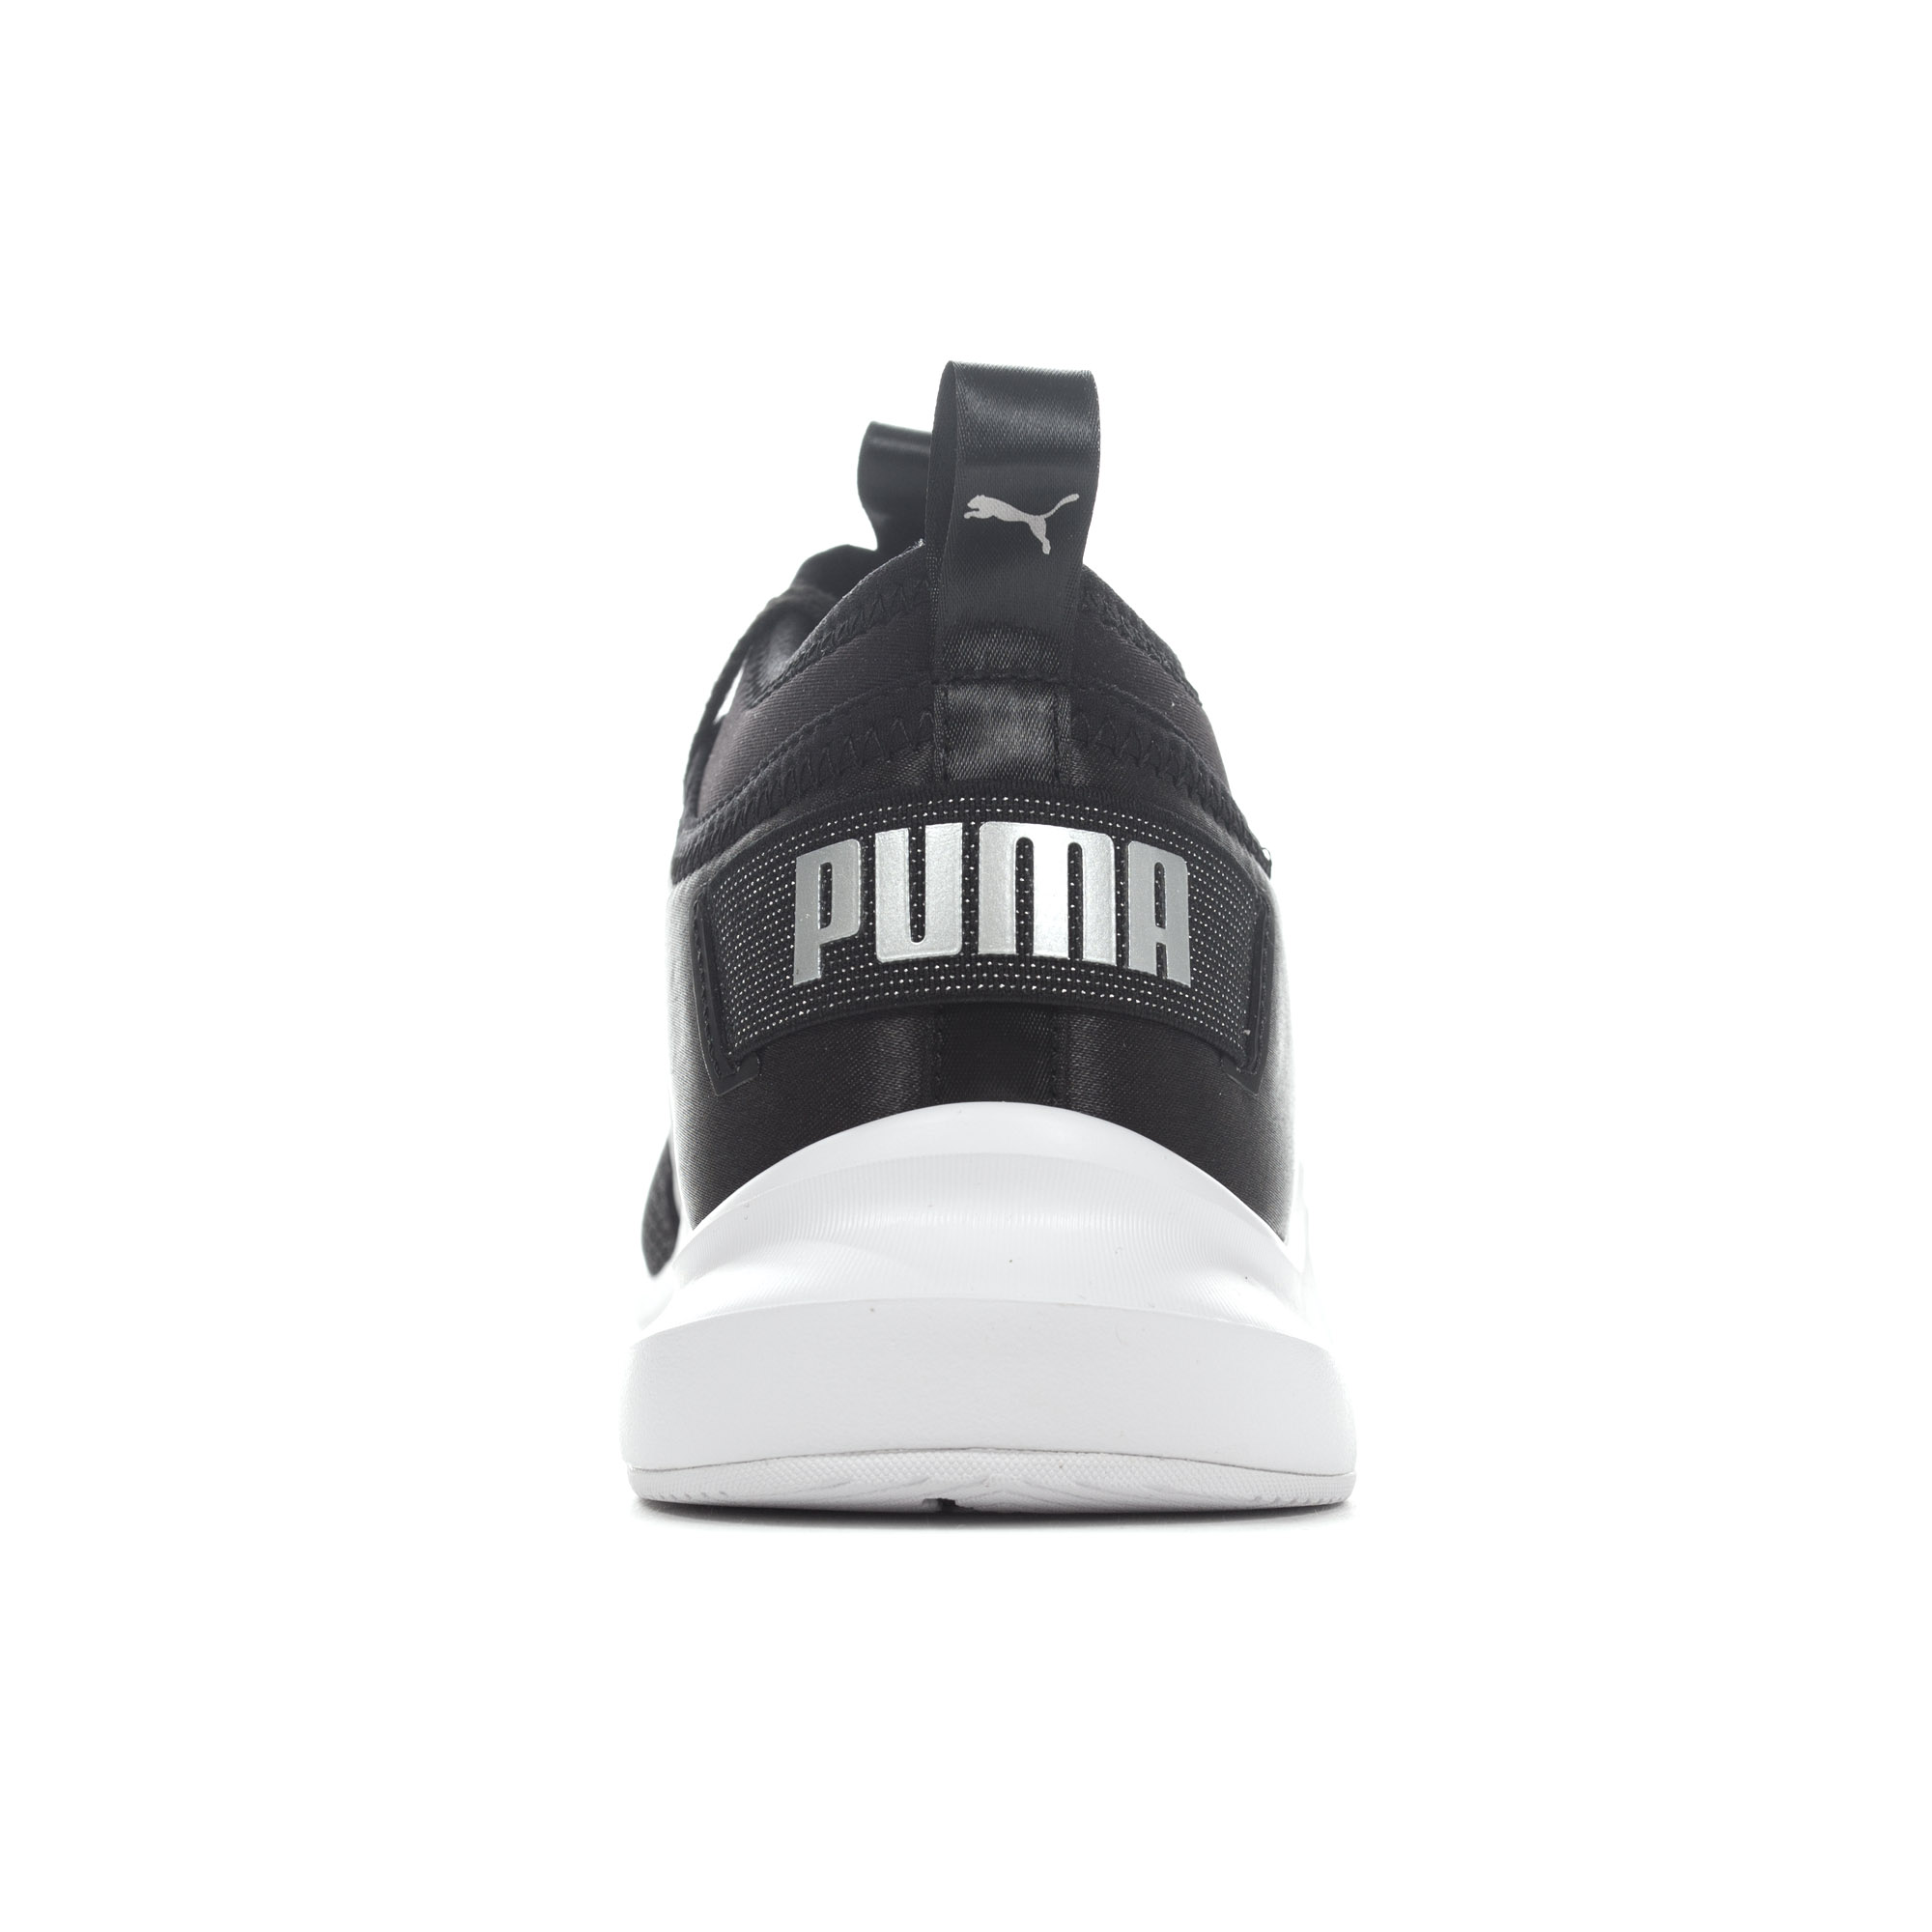 98691f019b1 Puma Phenom Satin Lo En Pointe Womens Fitness Training Trainer Shoe ...